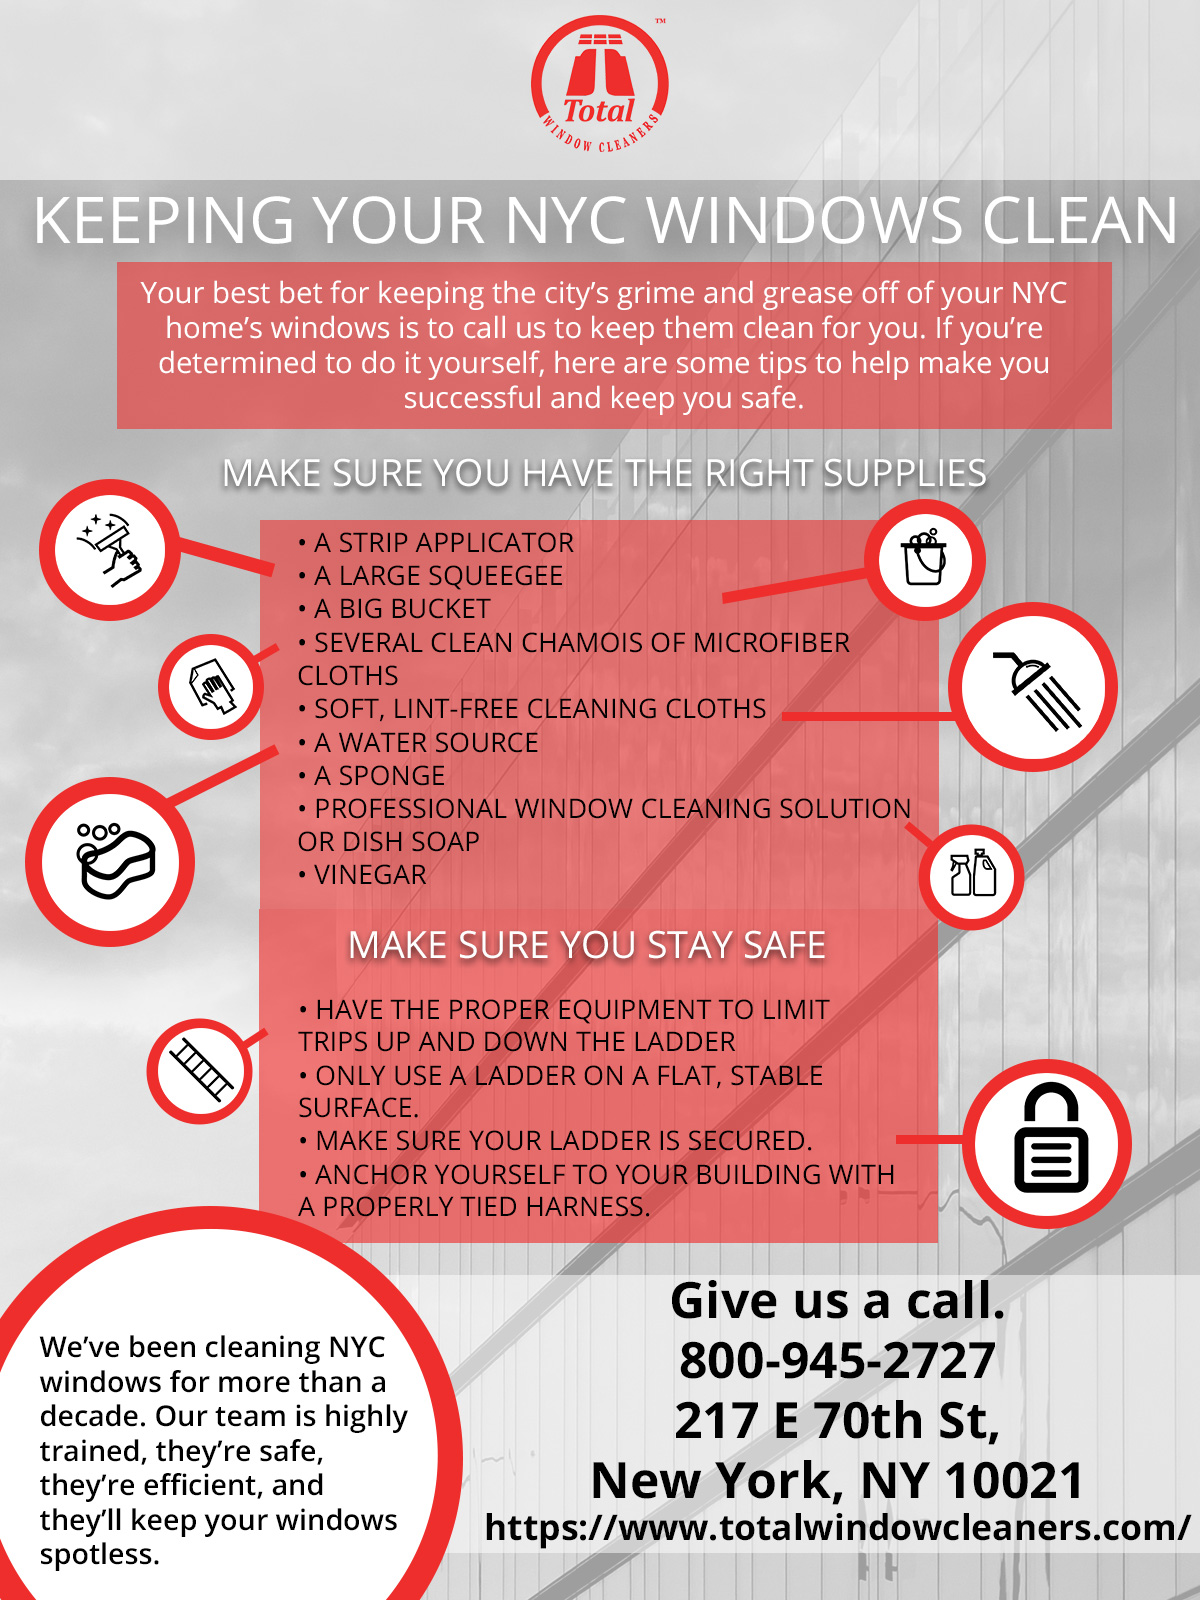 Window Cleaning NYC: Tips For Keeping Your NYC Windows Clean